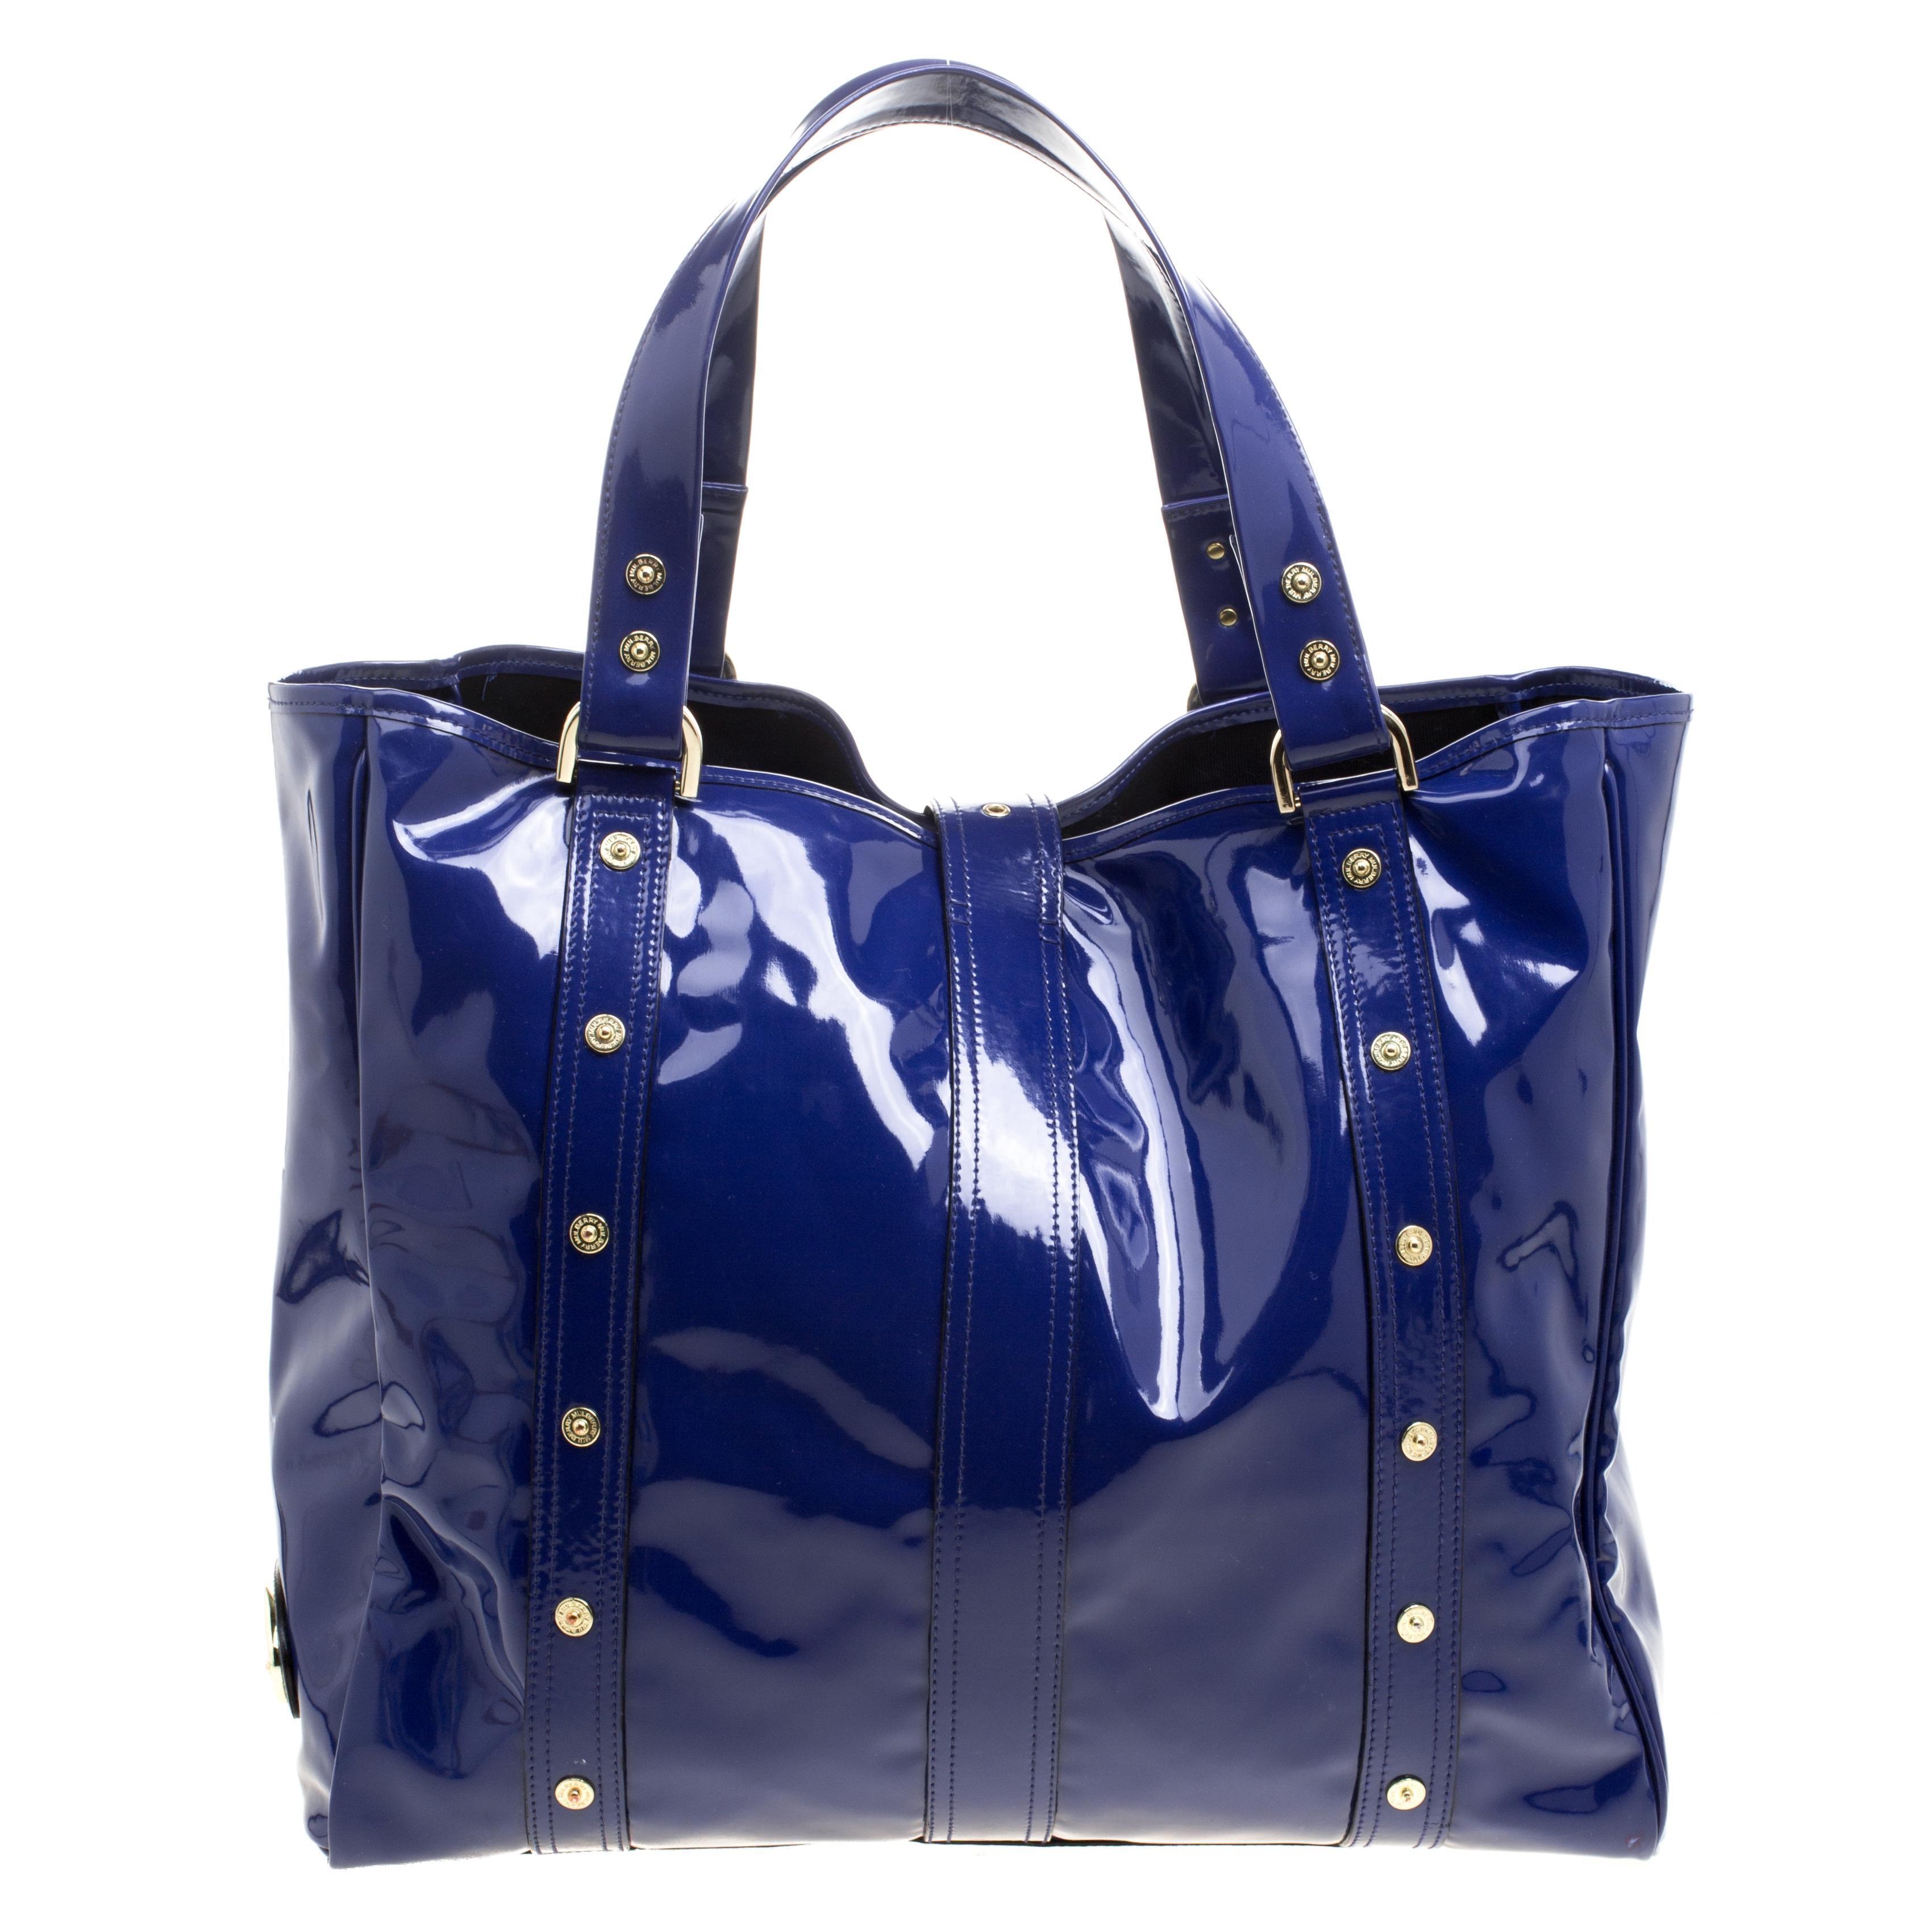 ... discount mulberry roxanne blue patent leather canvas tote tradesy 81ef6  33816 0865ab07d54f4